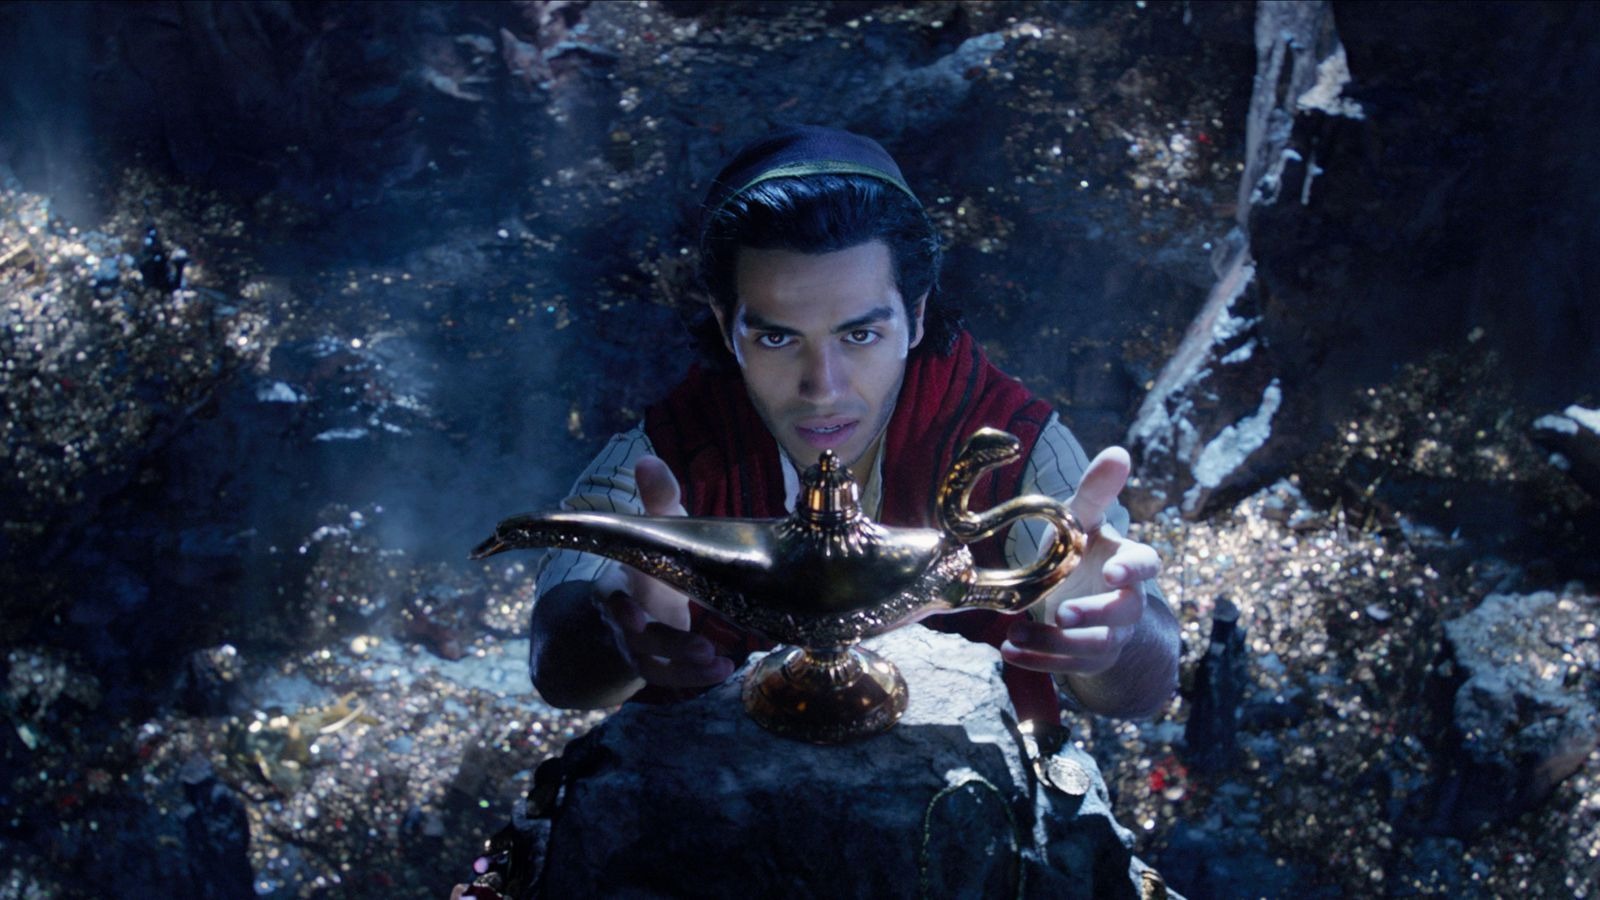 Aladdin Review: A Magic Corporate Ride to Nowhere Special